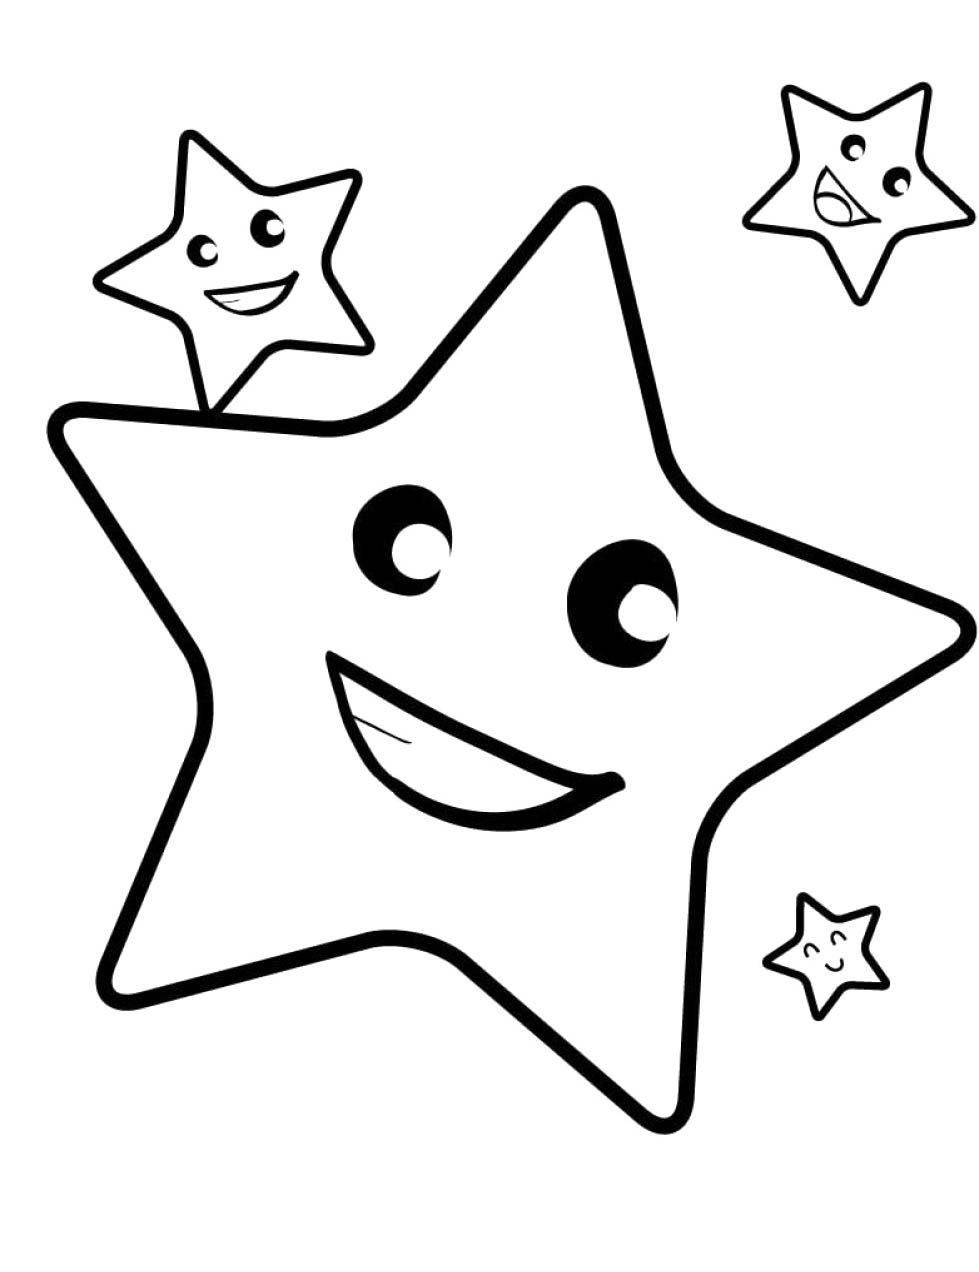 star coloring page - Google Search | For the Kids ...